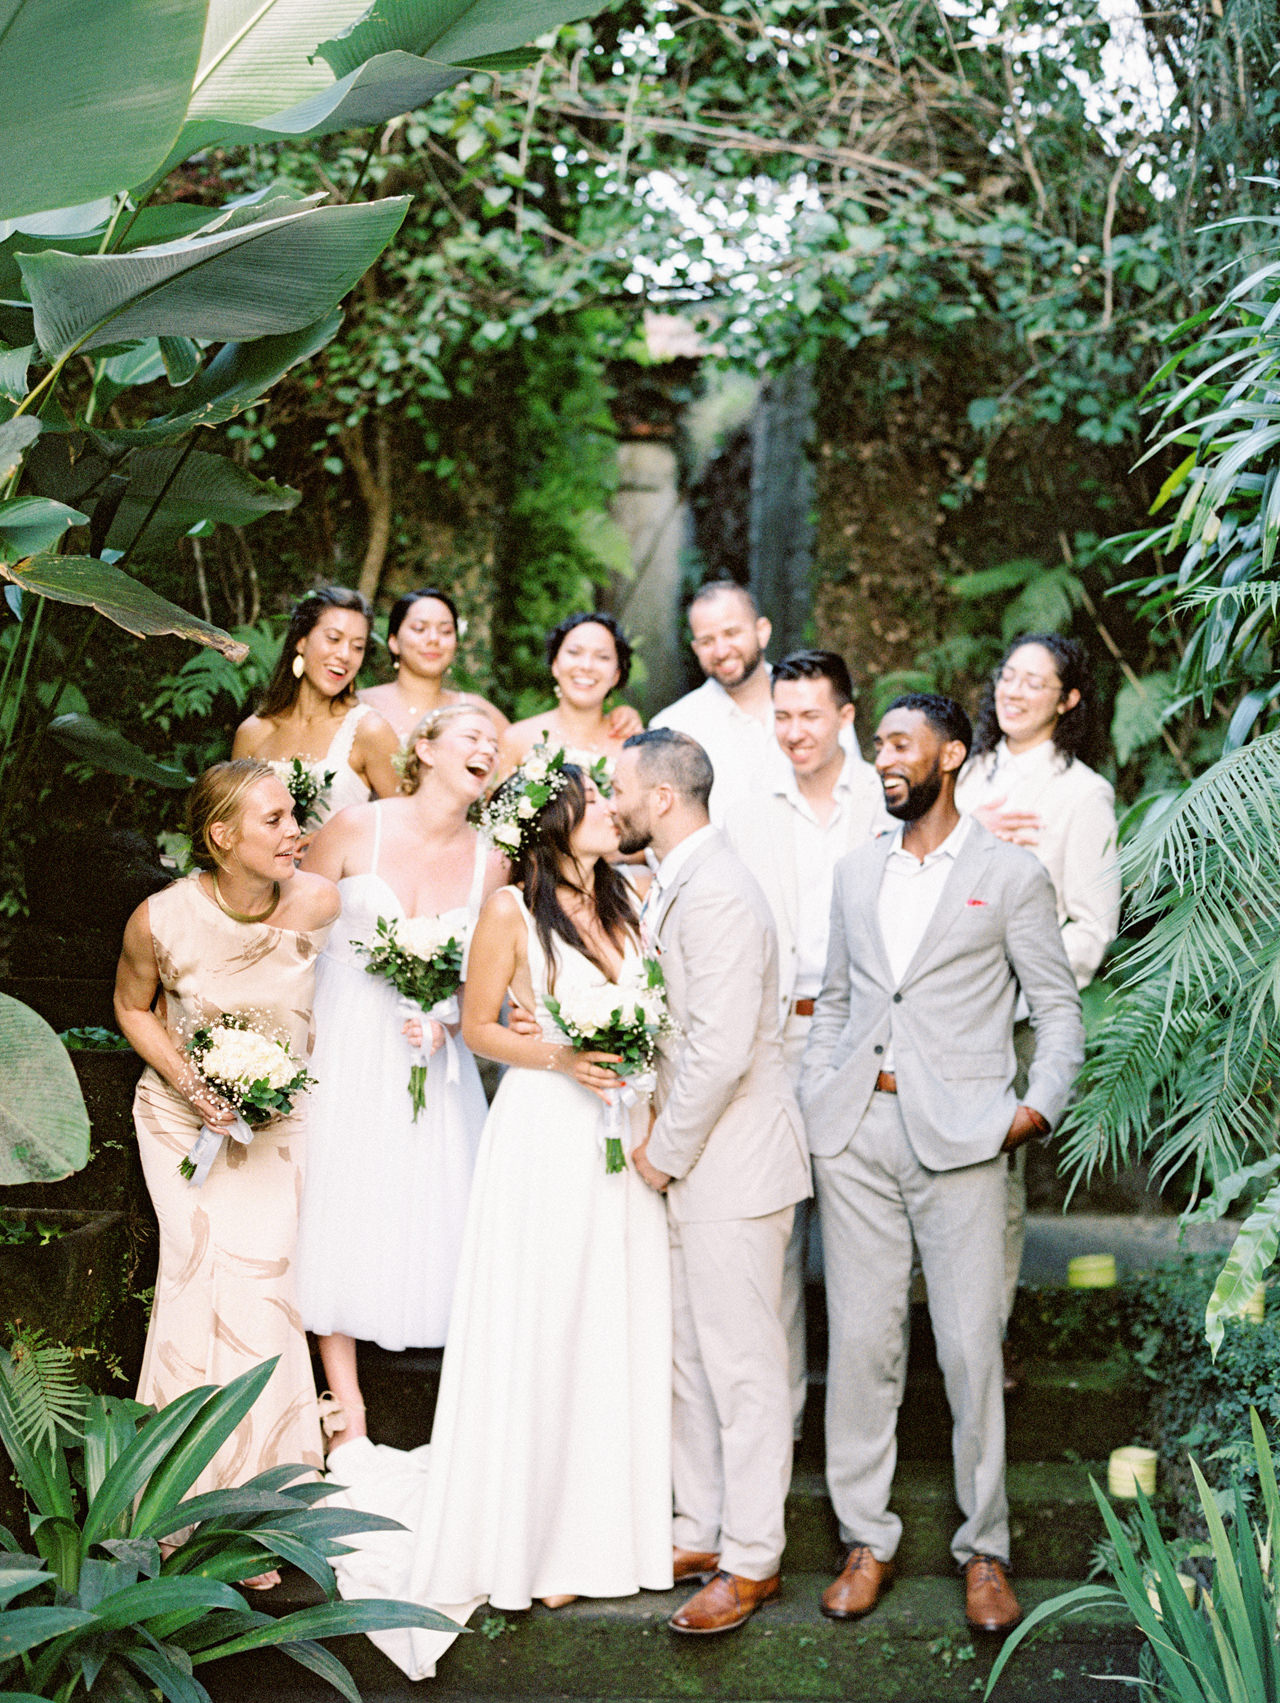 K&R: Greeneries Ubud Wedding - Ubud Wedding Photographer 40